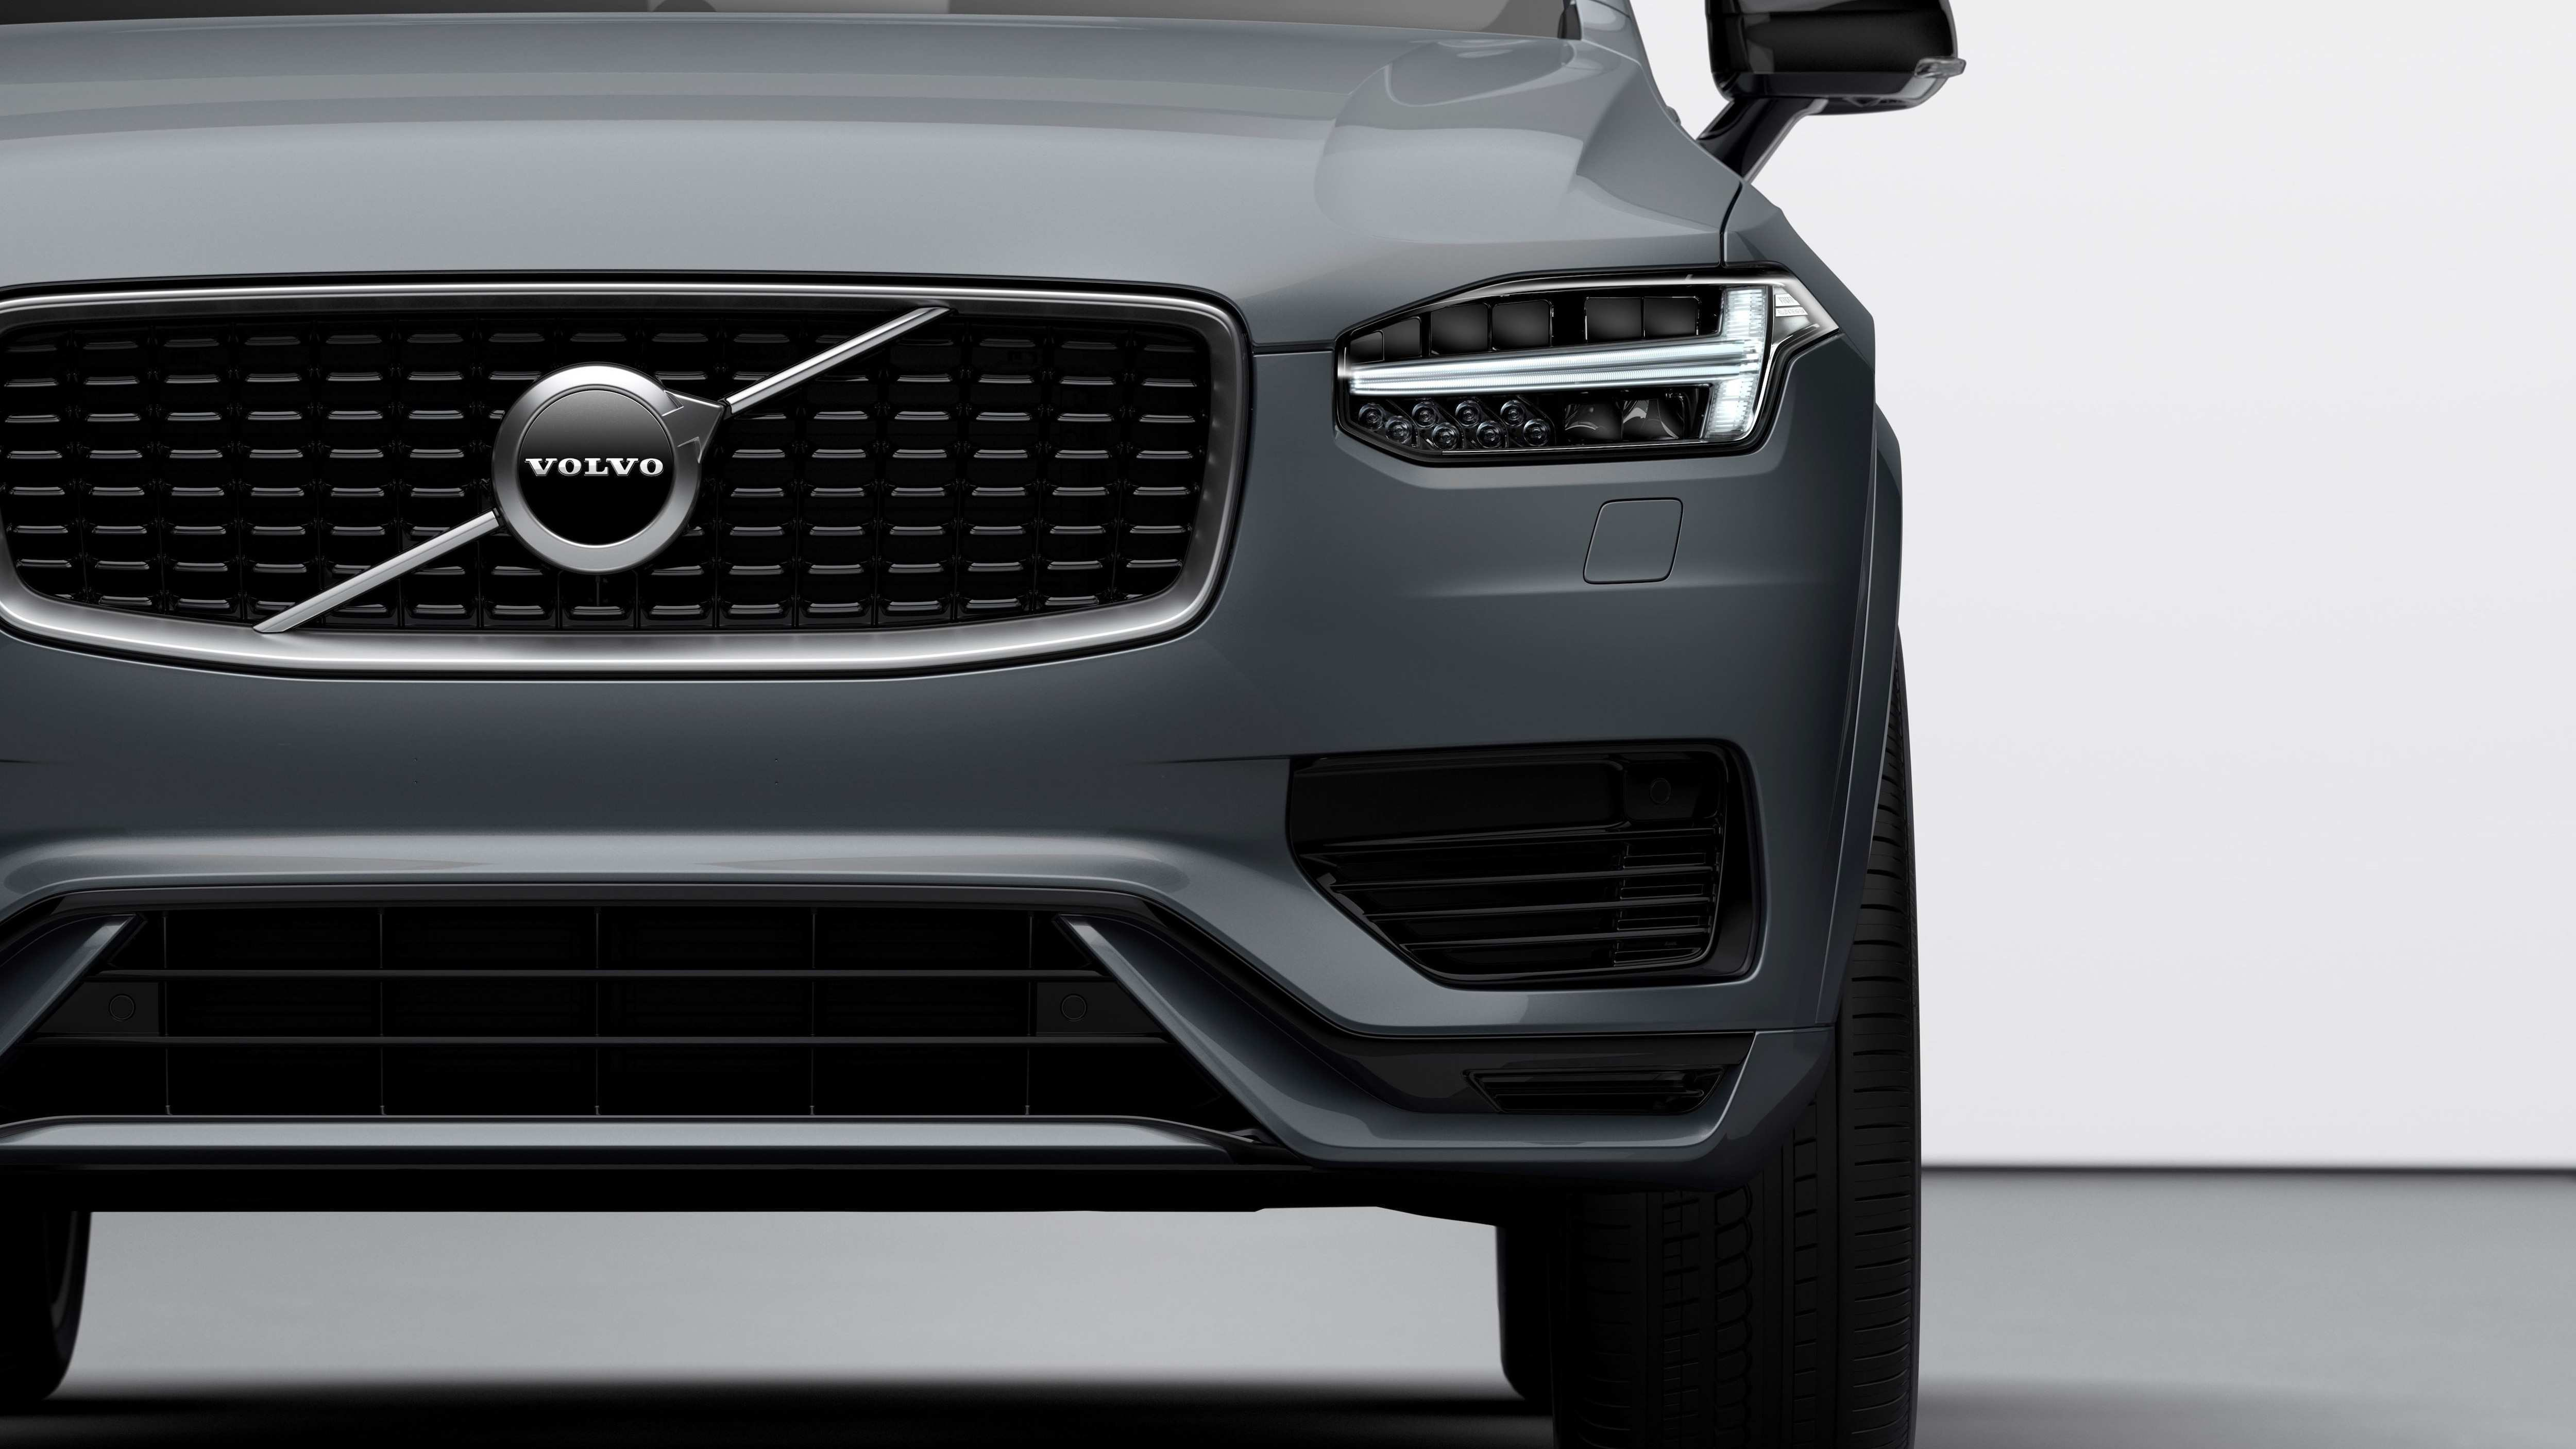 85 Best Review 2020 Volvo XC90 Price and Review with 2020 Volvo XC90